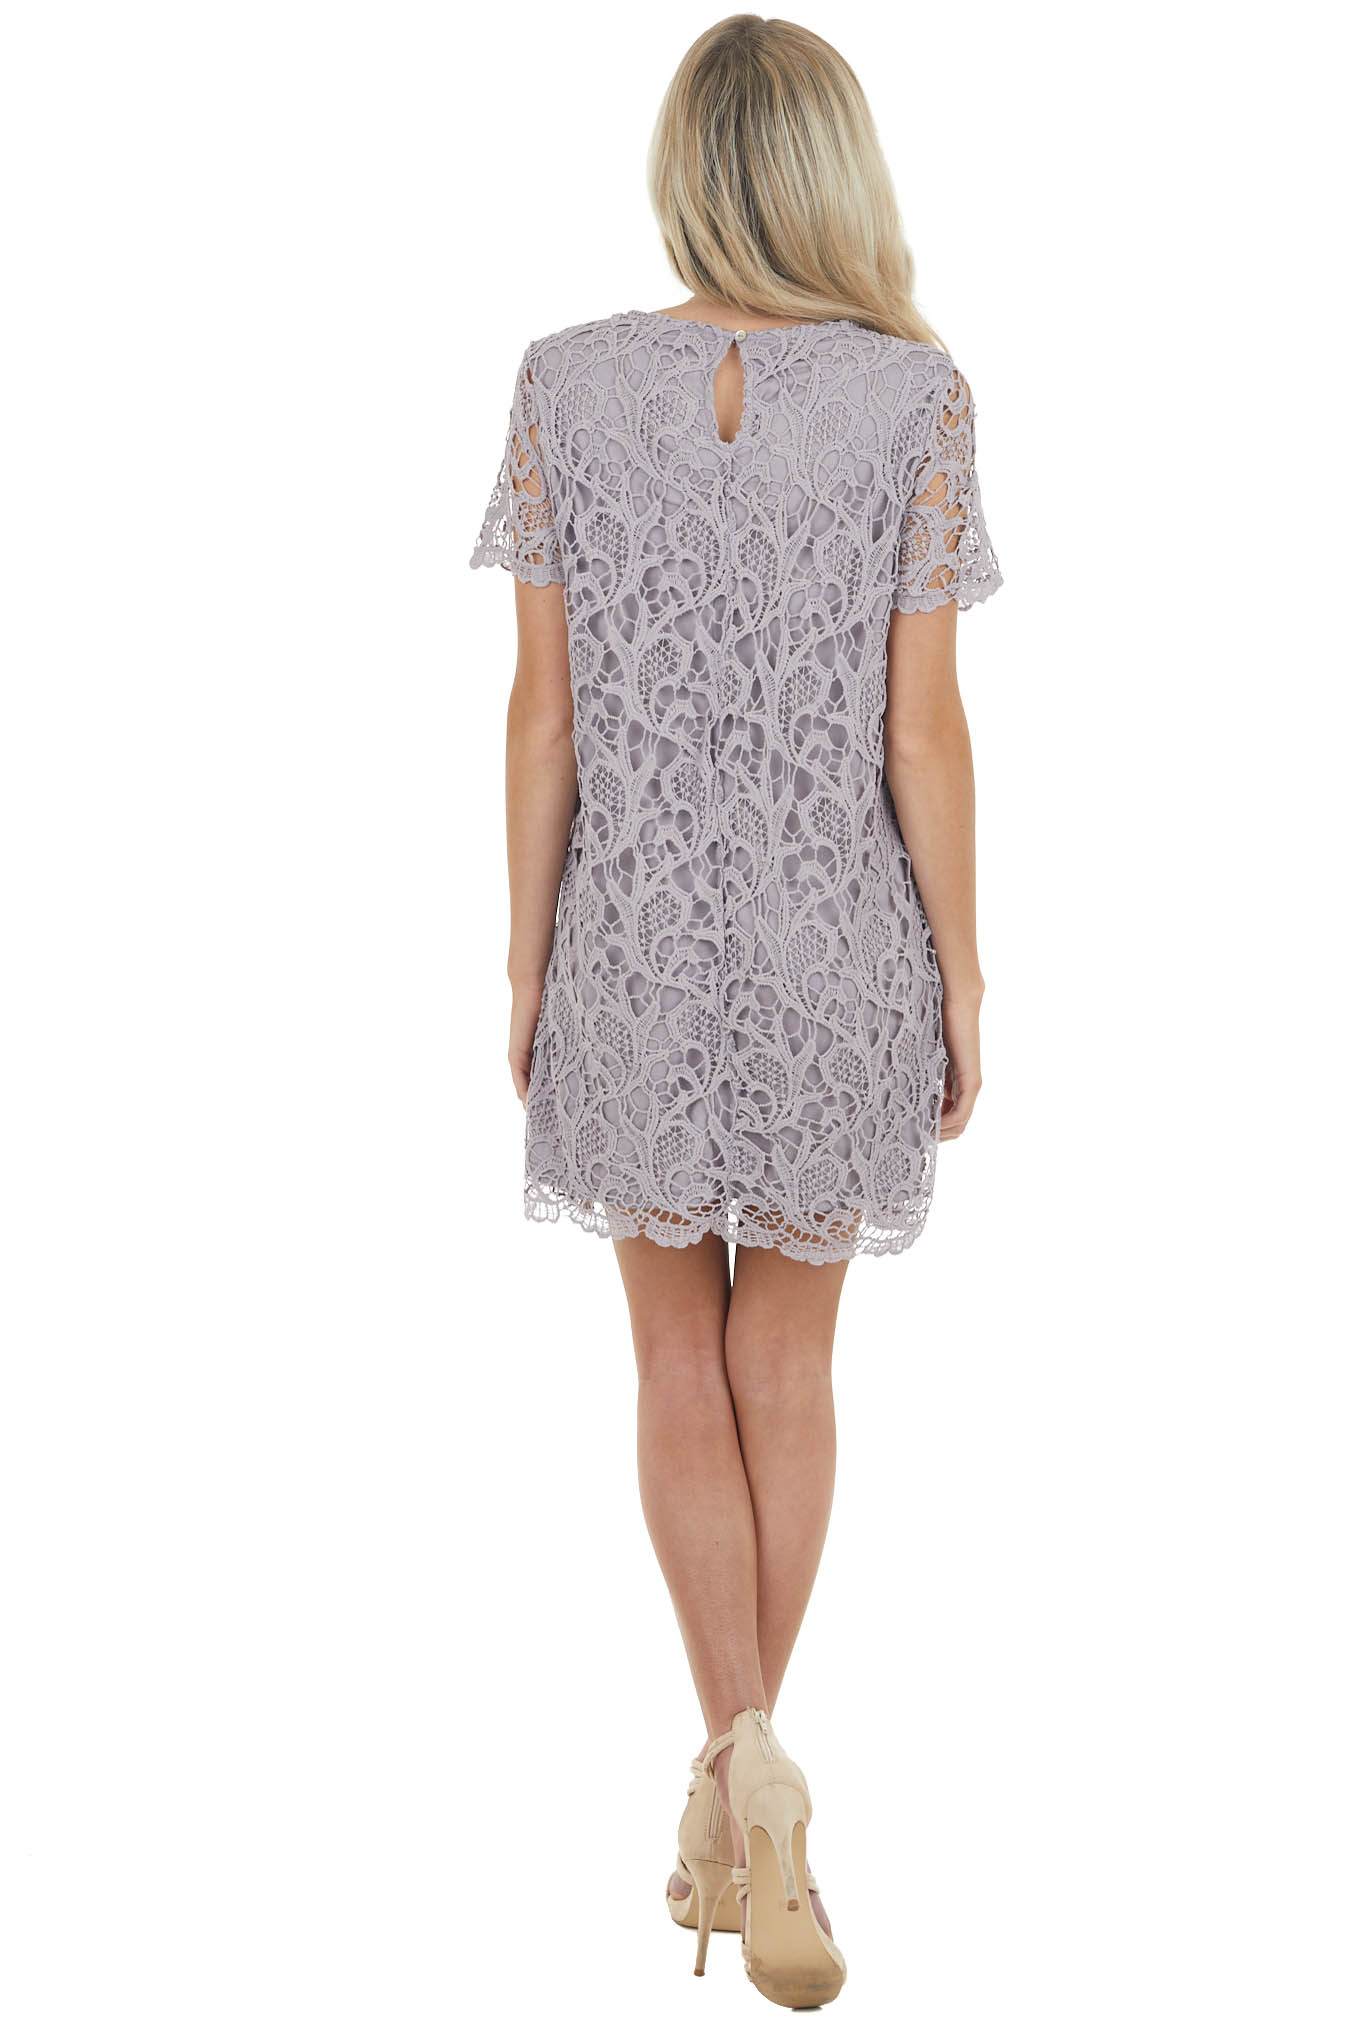 Vintage Lilac Crochet Lace Mini Dress with Short Sleeves